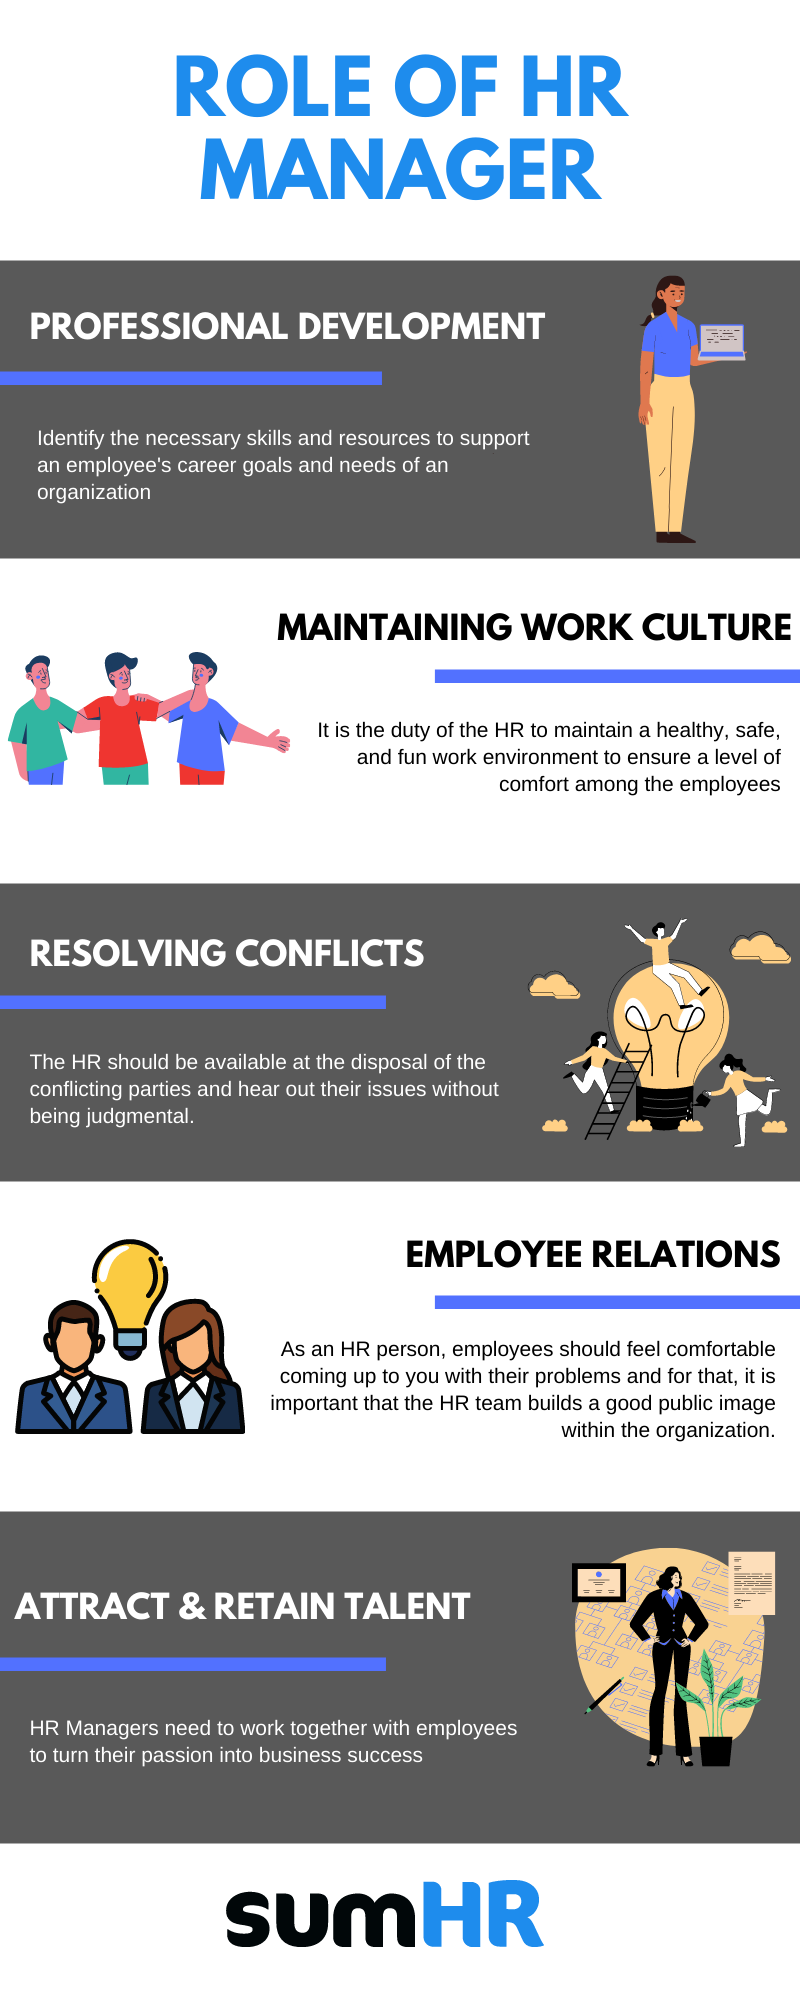 Role Of HR Manager at SME, Startups and All Organizations